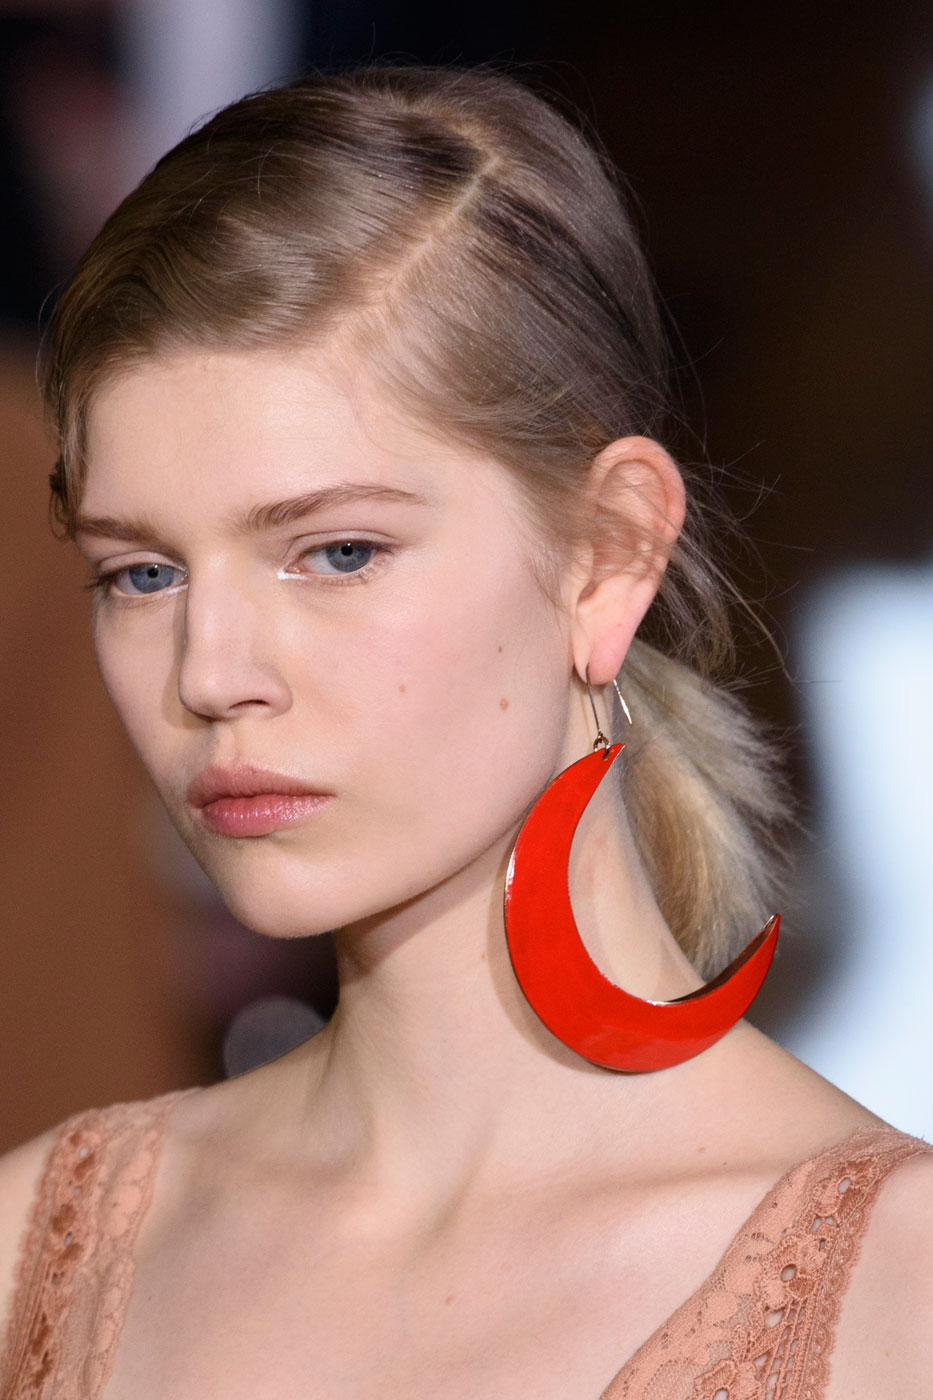 Flying Solo: 1 Single Statement Earring Is All You Need Right Now